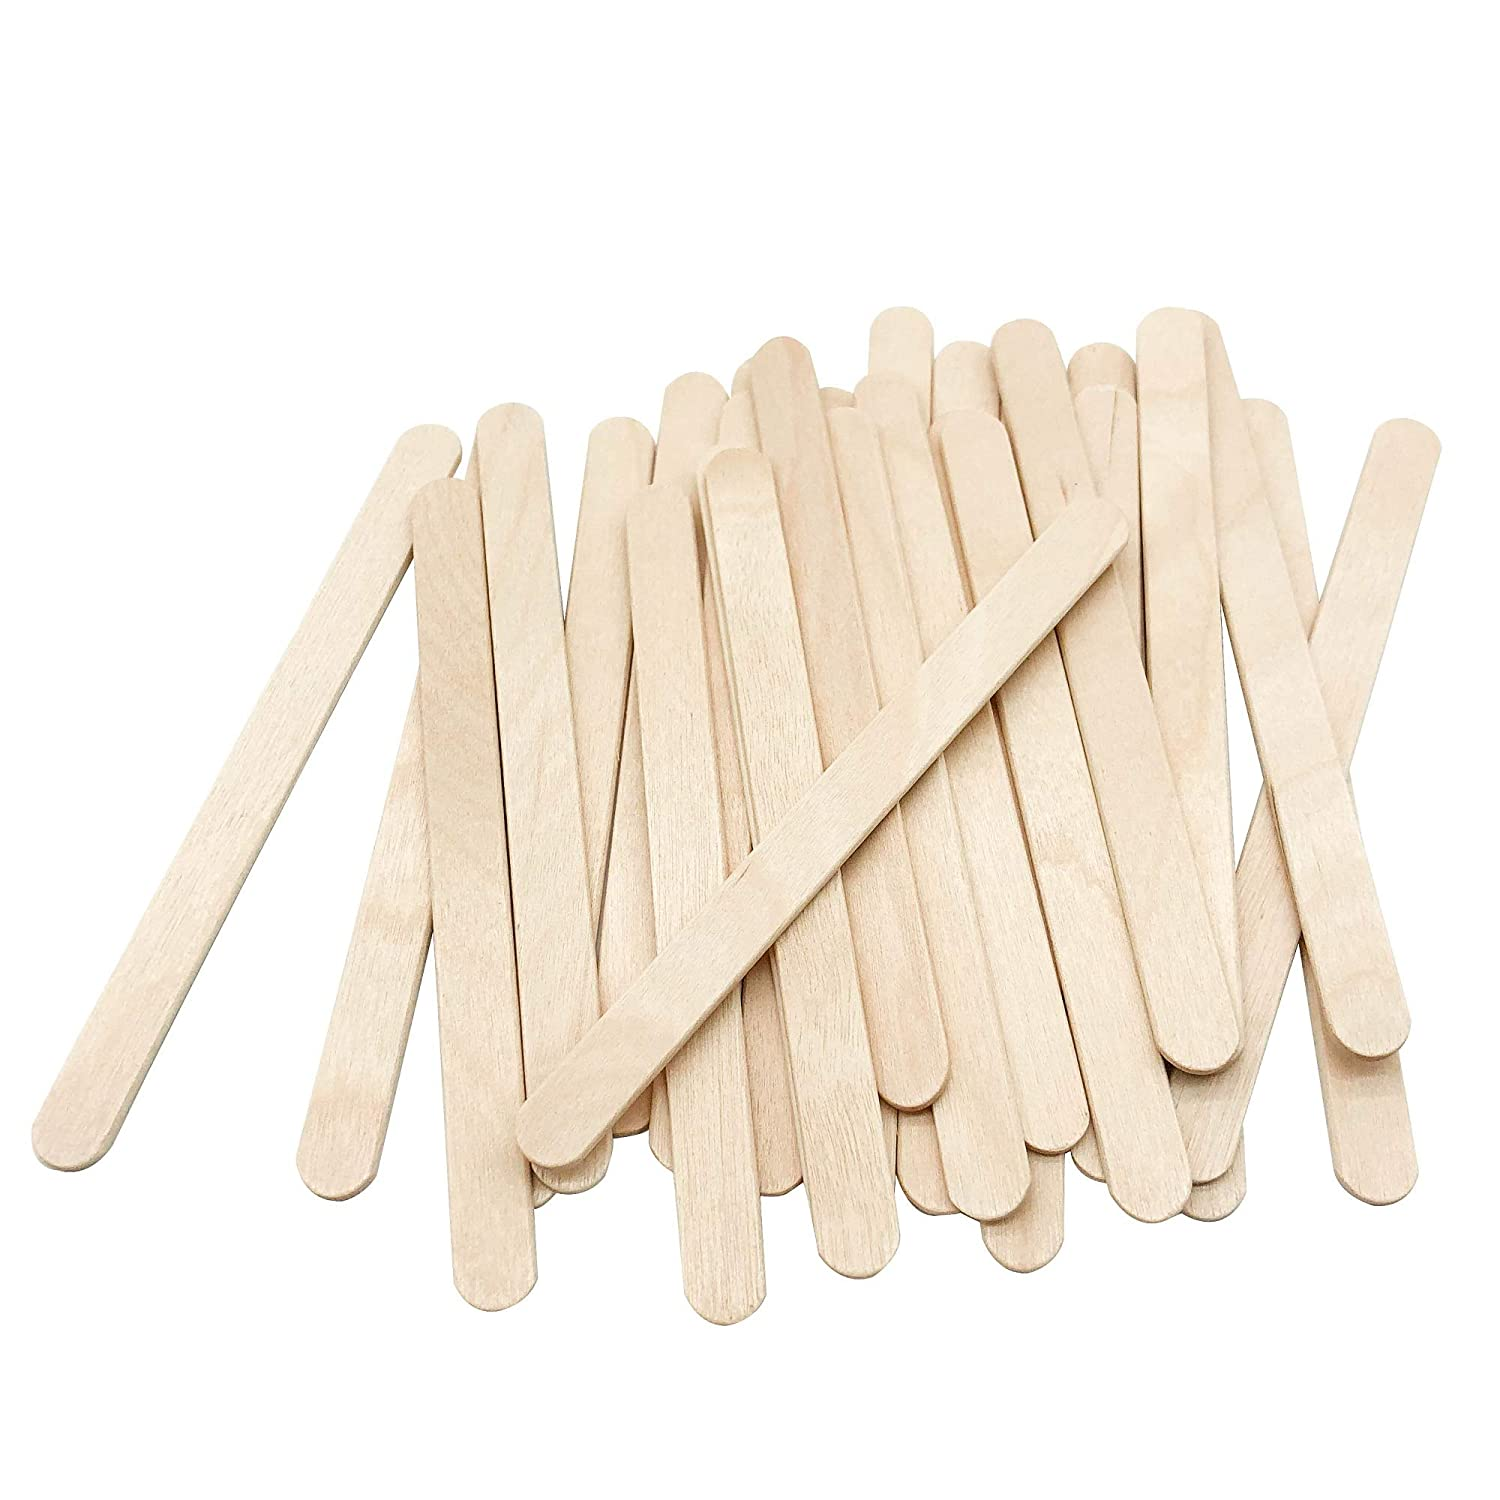 200 Pcs Craft Sticks Ice Cream Sticks Natural Wood Popsicle Craft Sticks 4 1 2 Length Treat Sticks Ice Pop Sticks for DIY Crafts